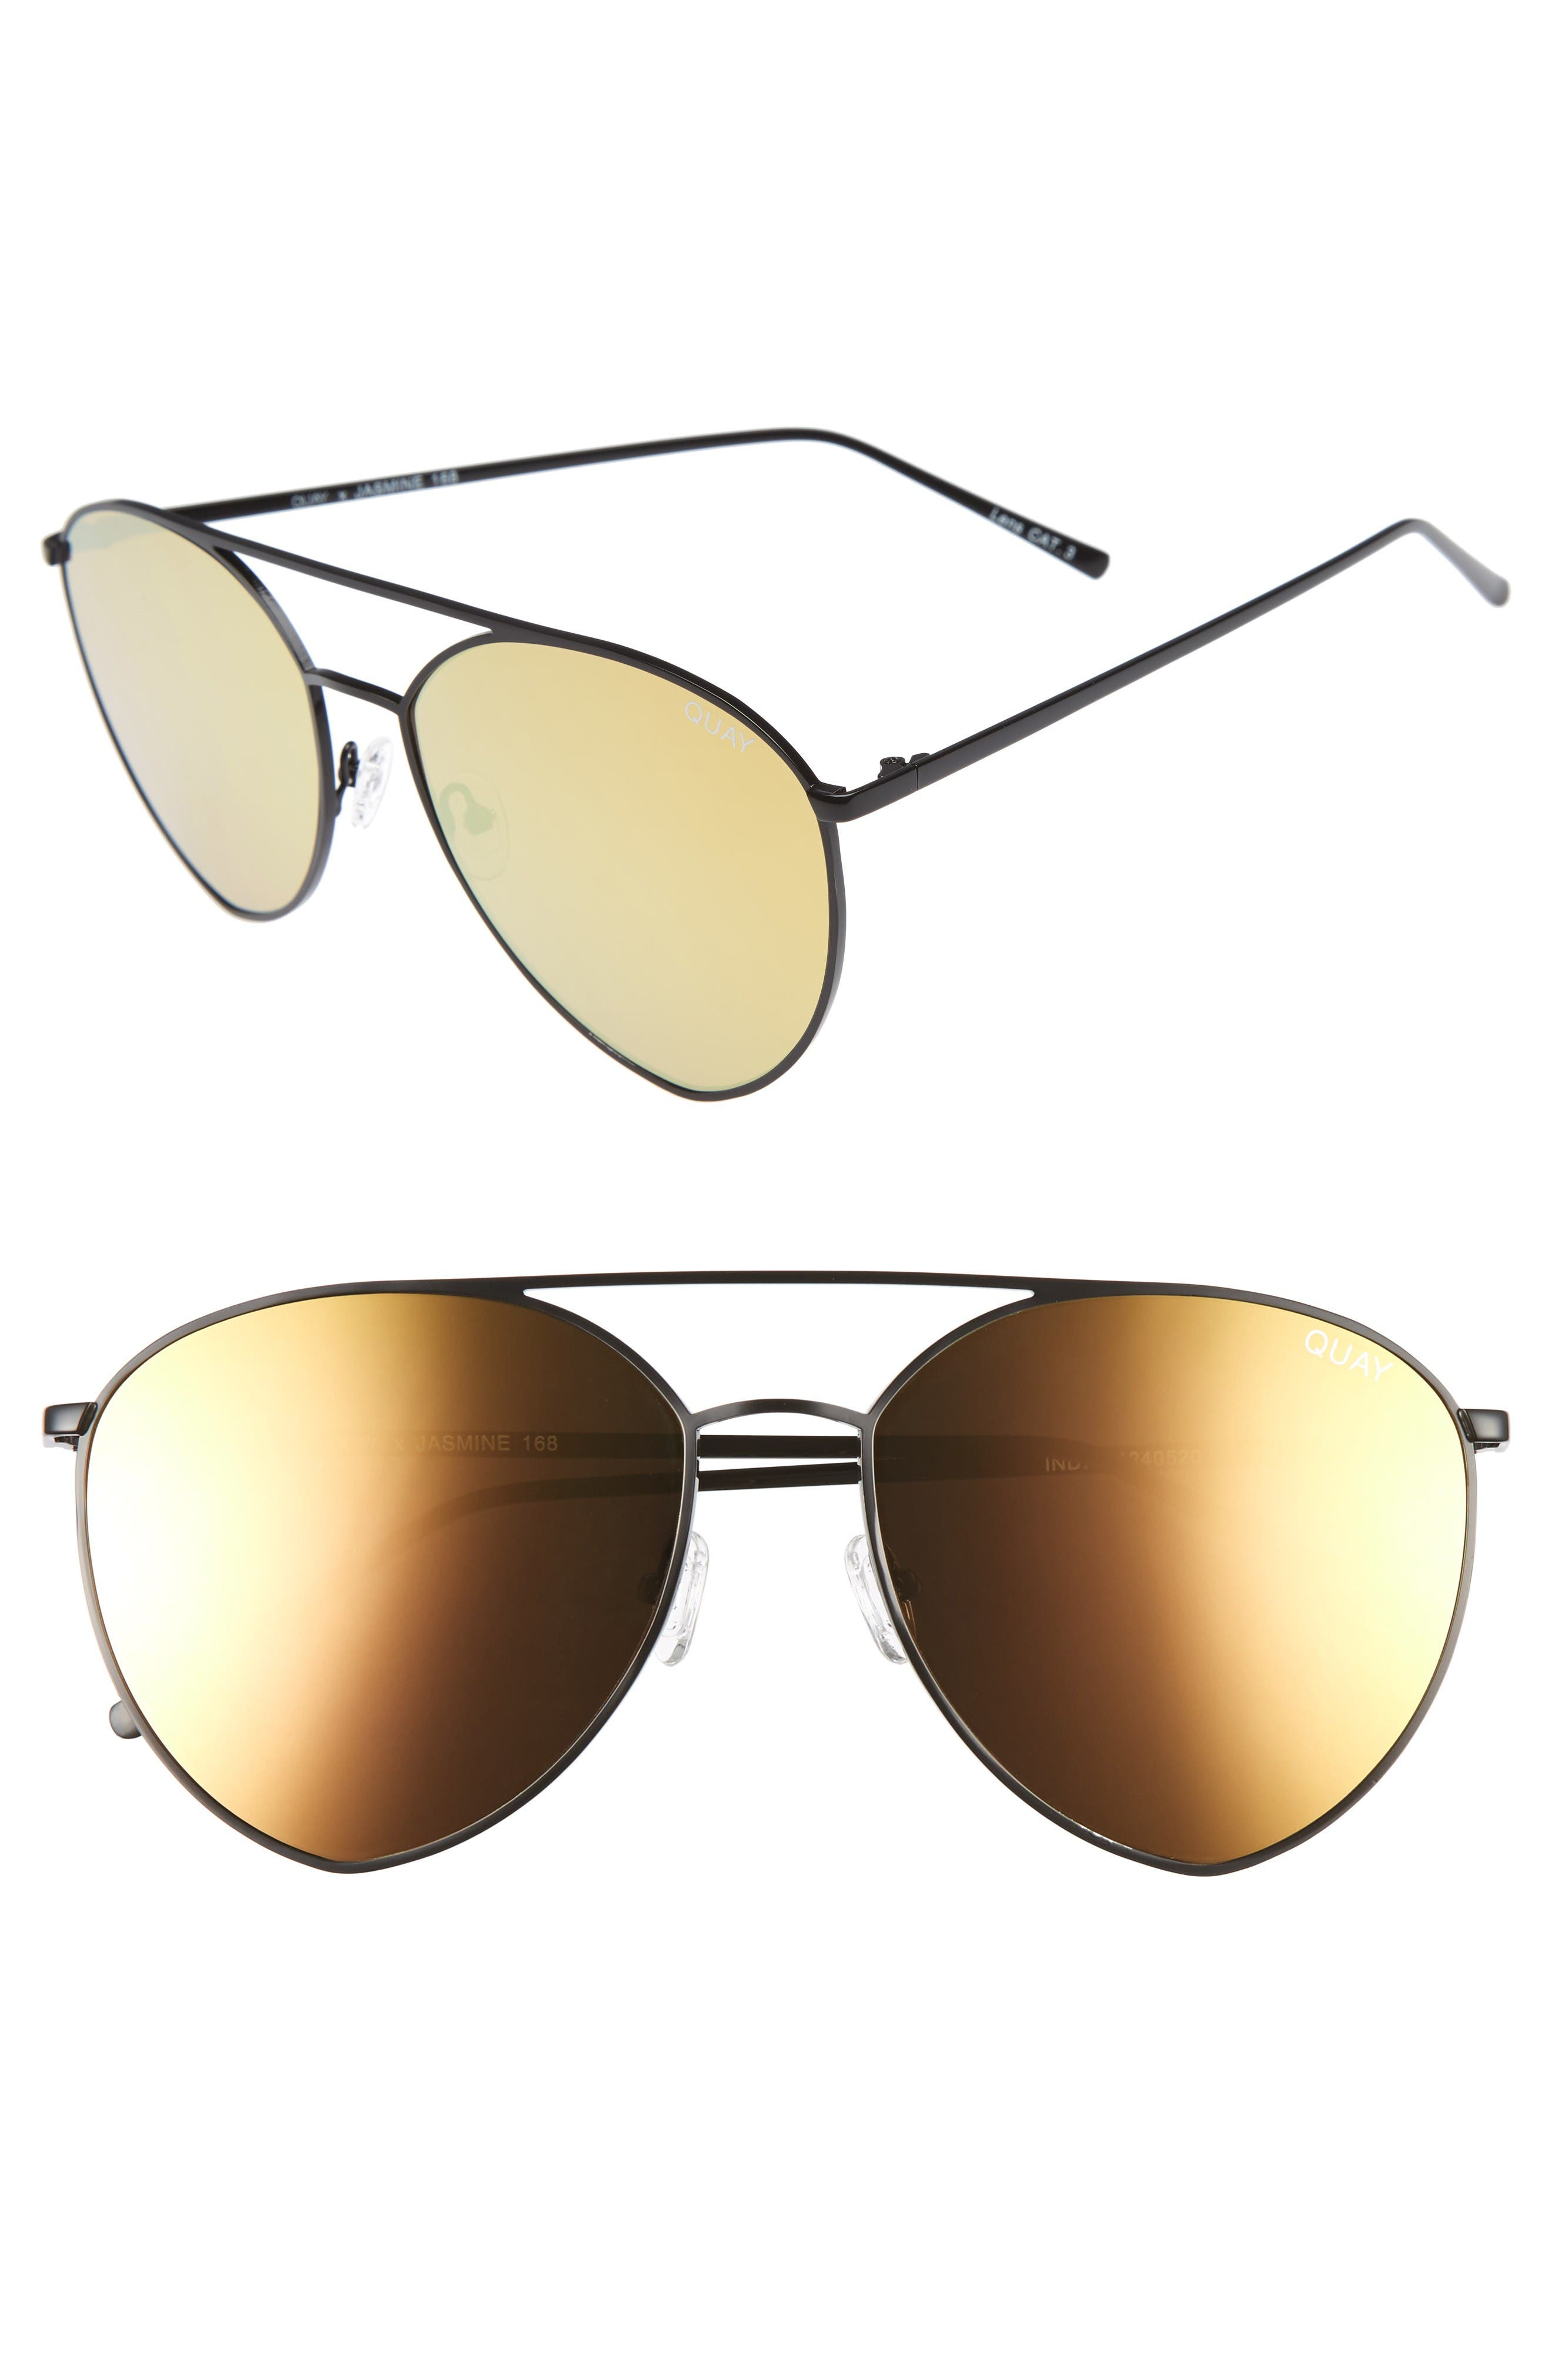 Quay Australia x Jasmine Sanders Indio 60mm Mirrored Aviator Sunglasses